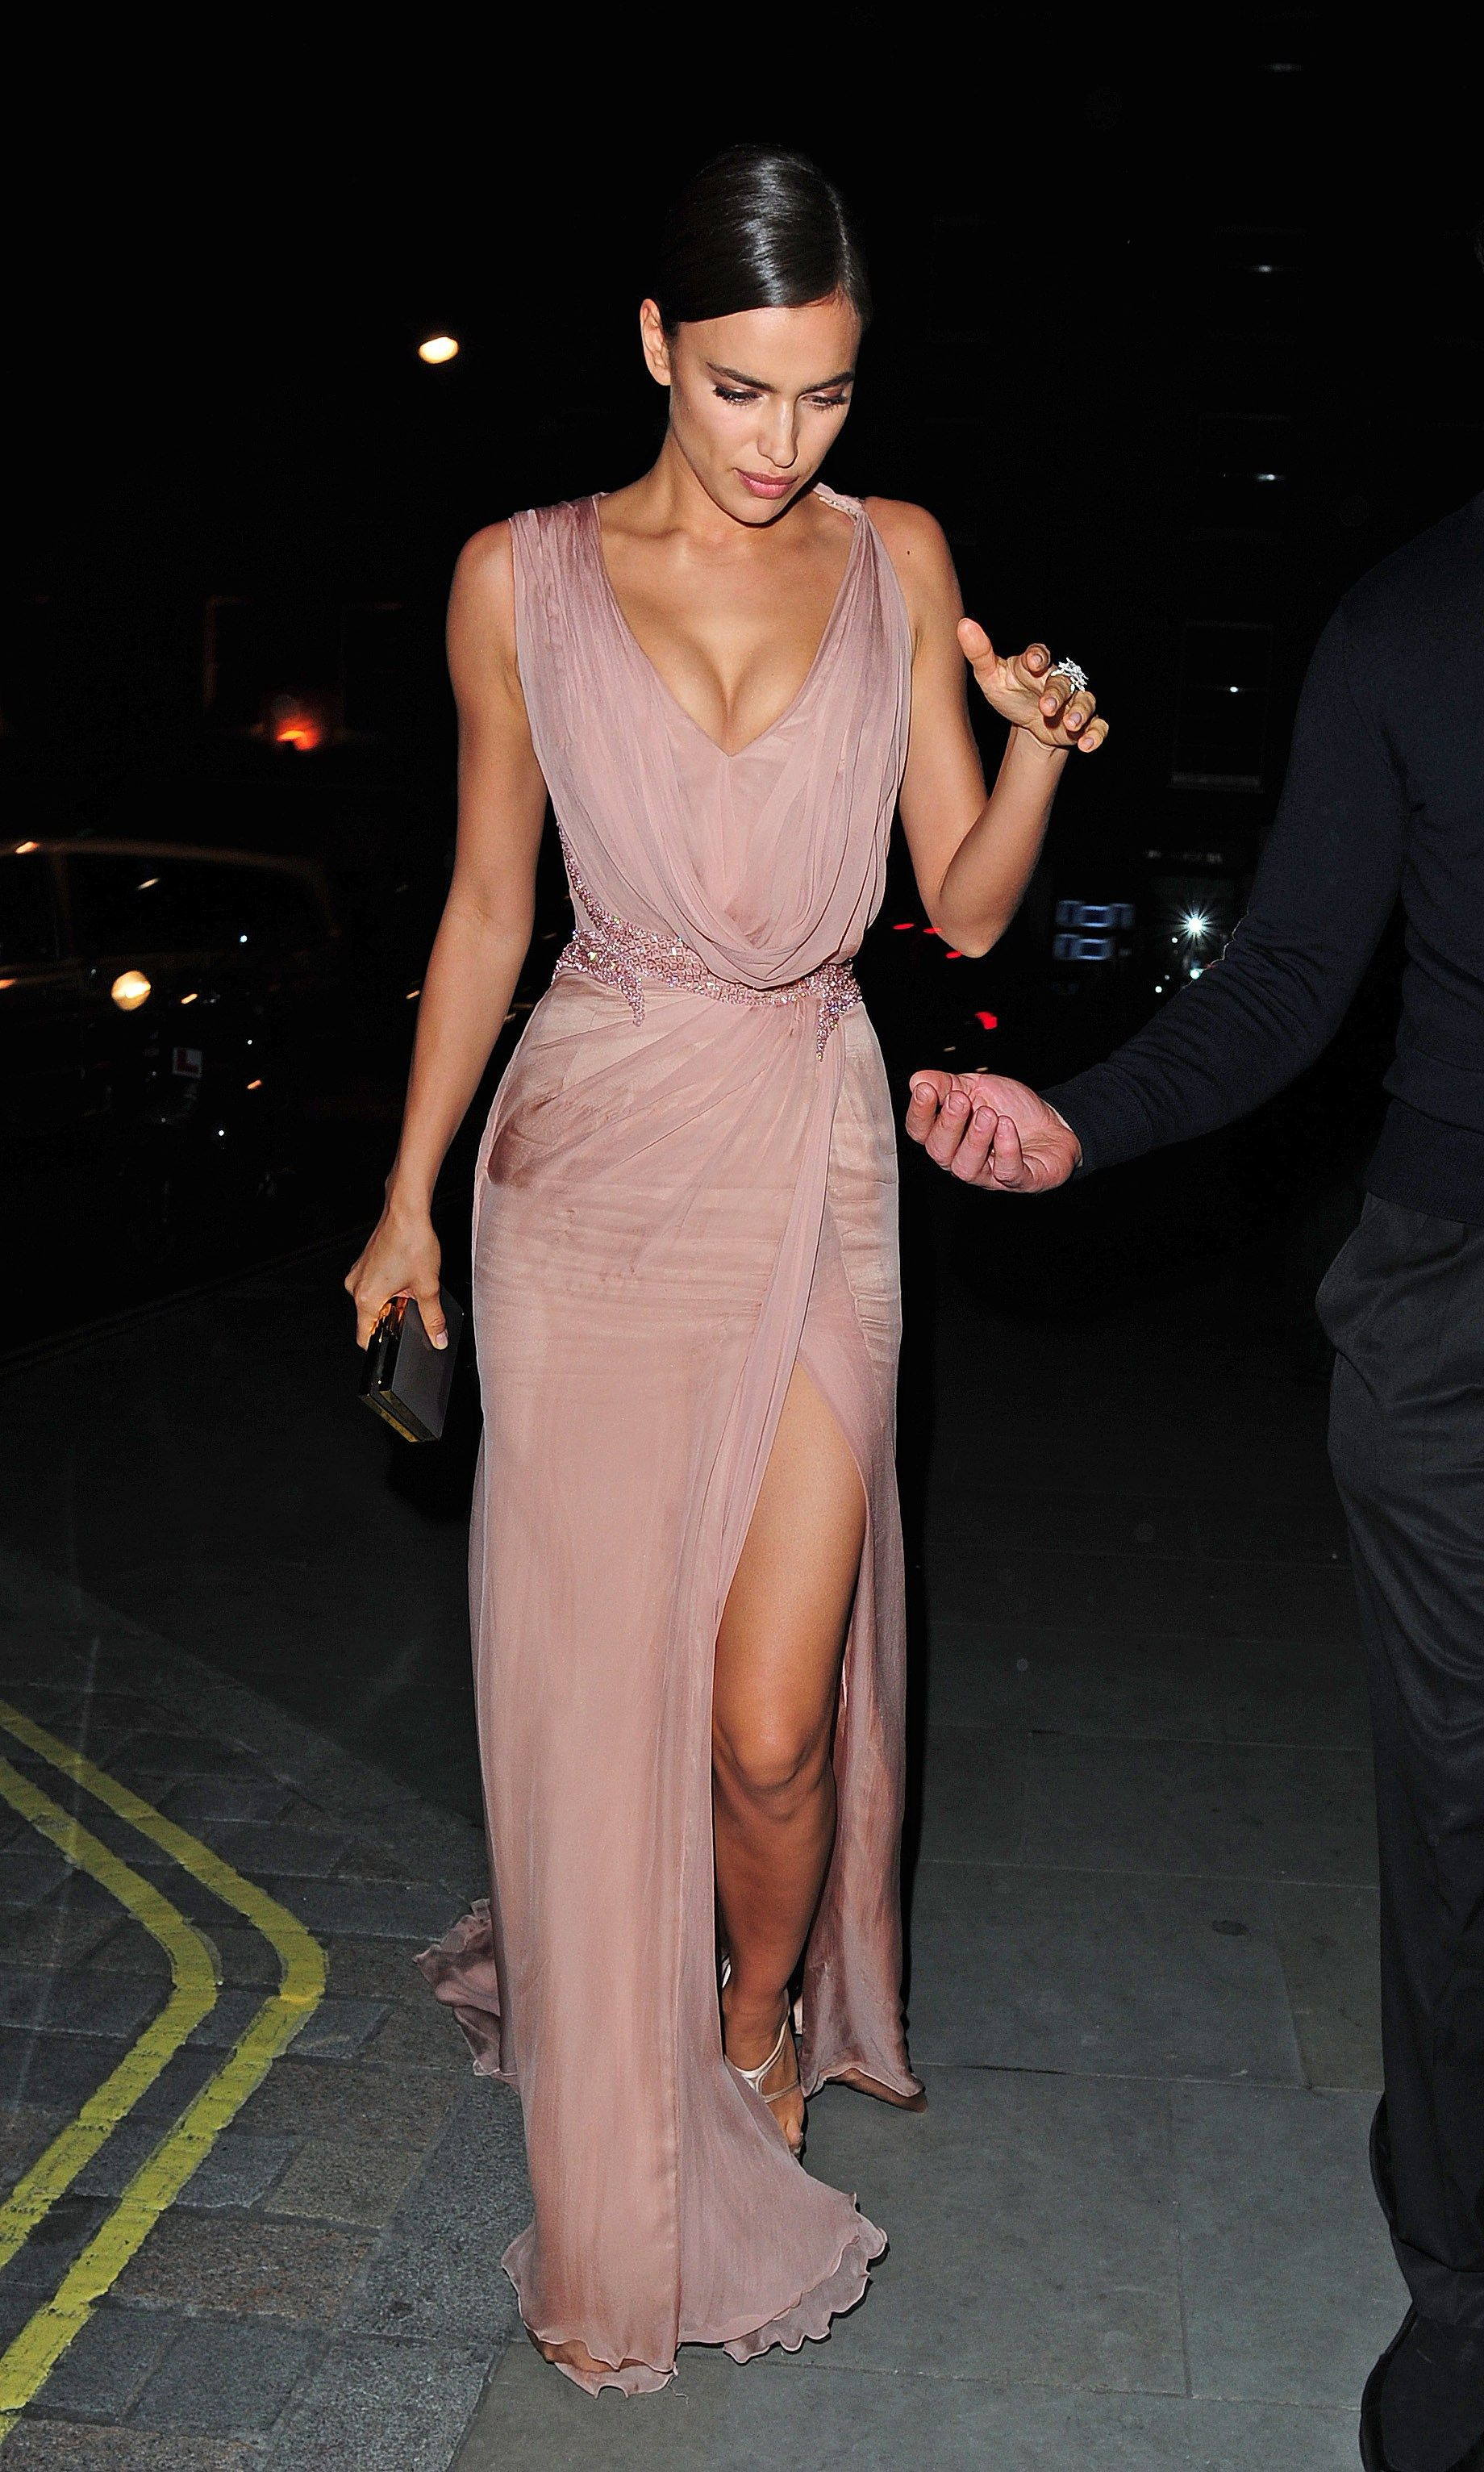 Los looks de la semana | Irina shayk, Silk chiffon and Gowns